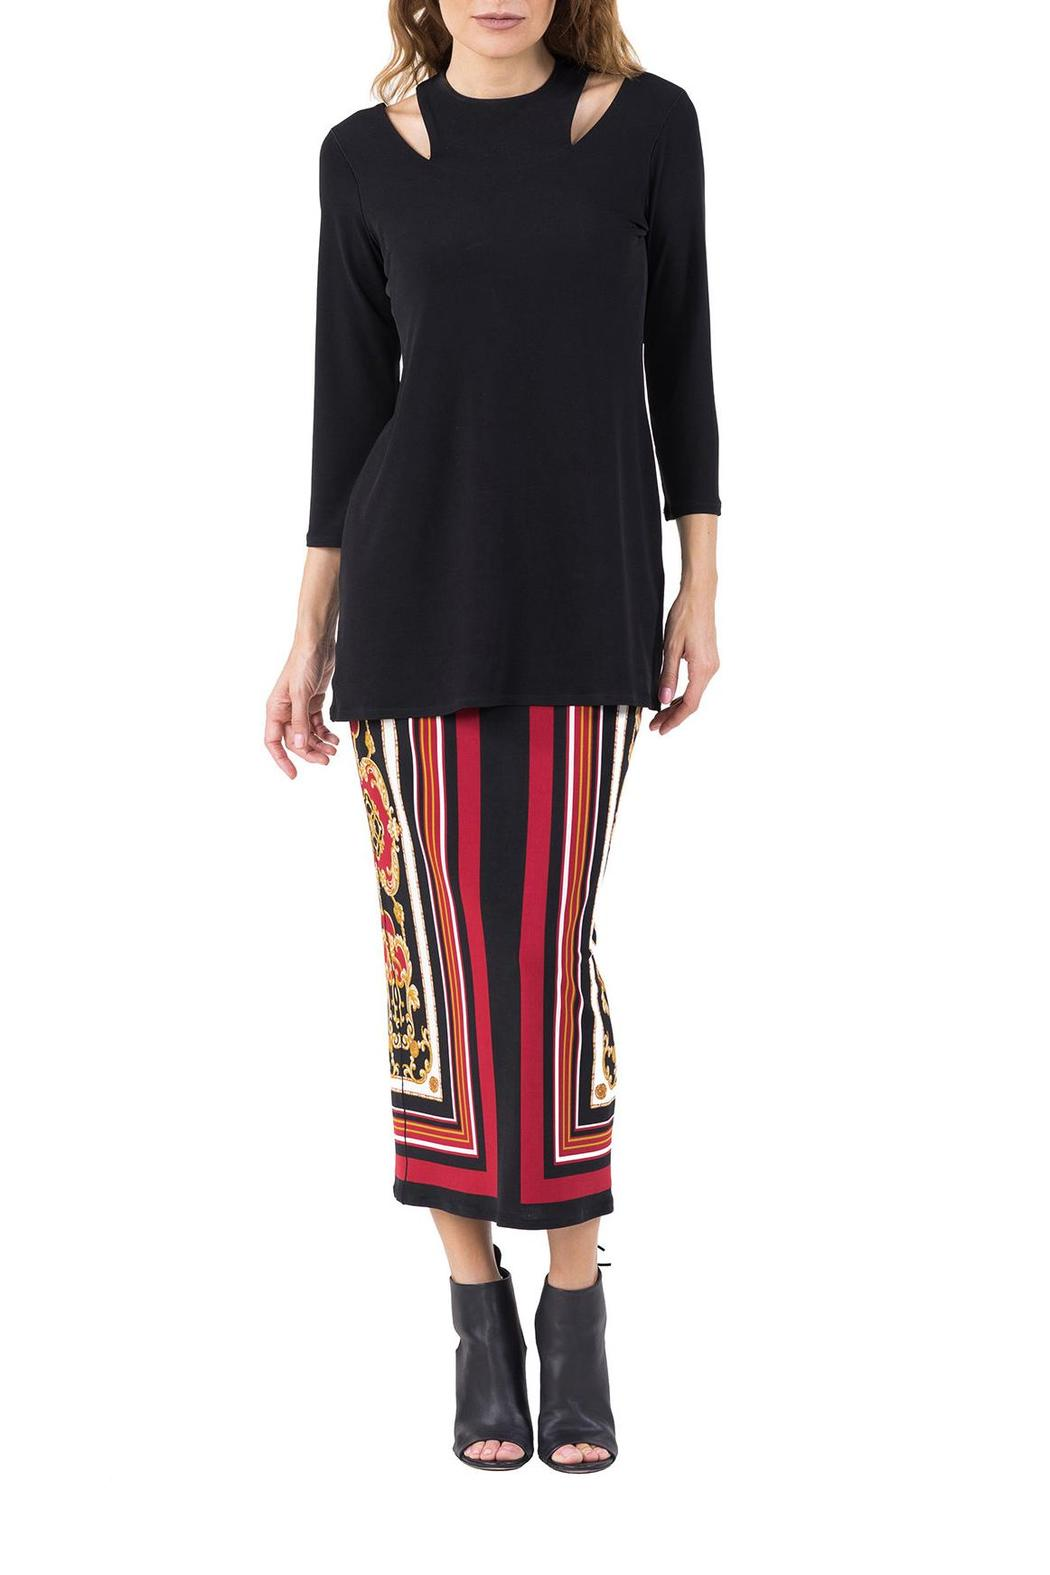 Eva Varro Two Necklines Tunic - Side Cropped Image